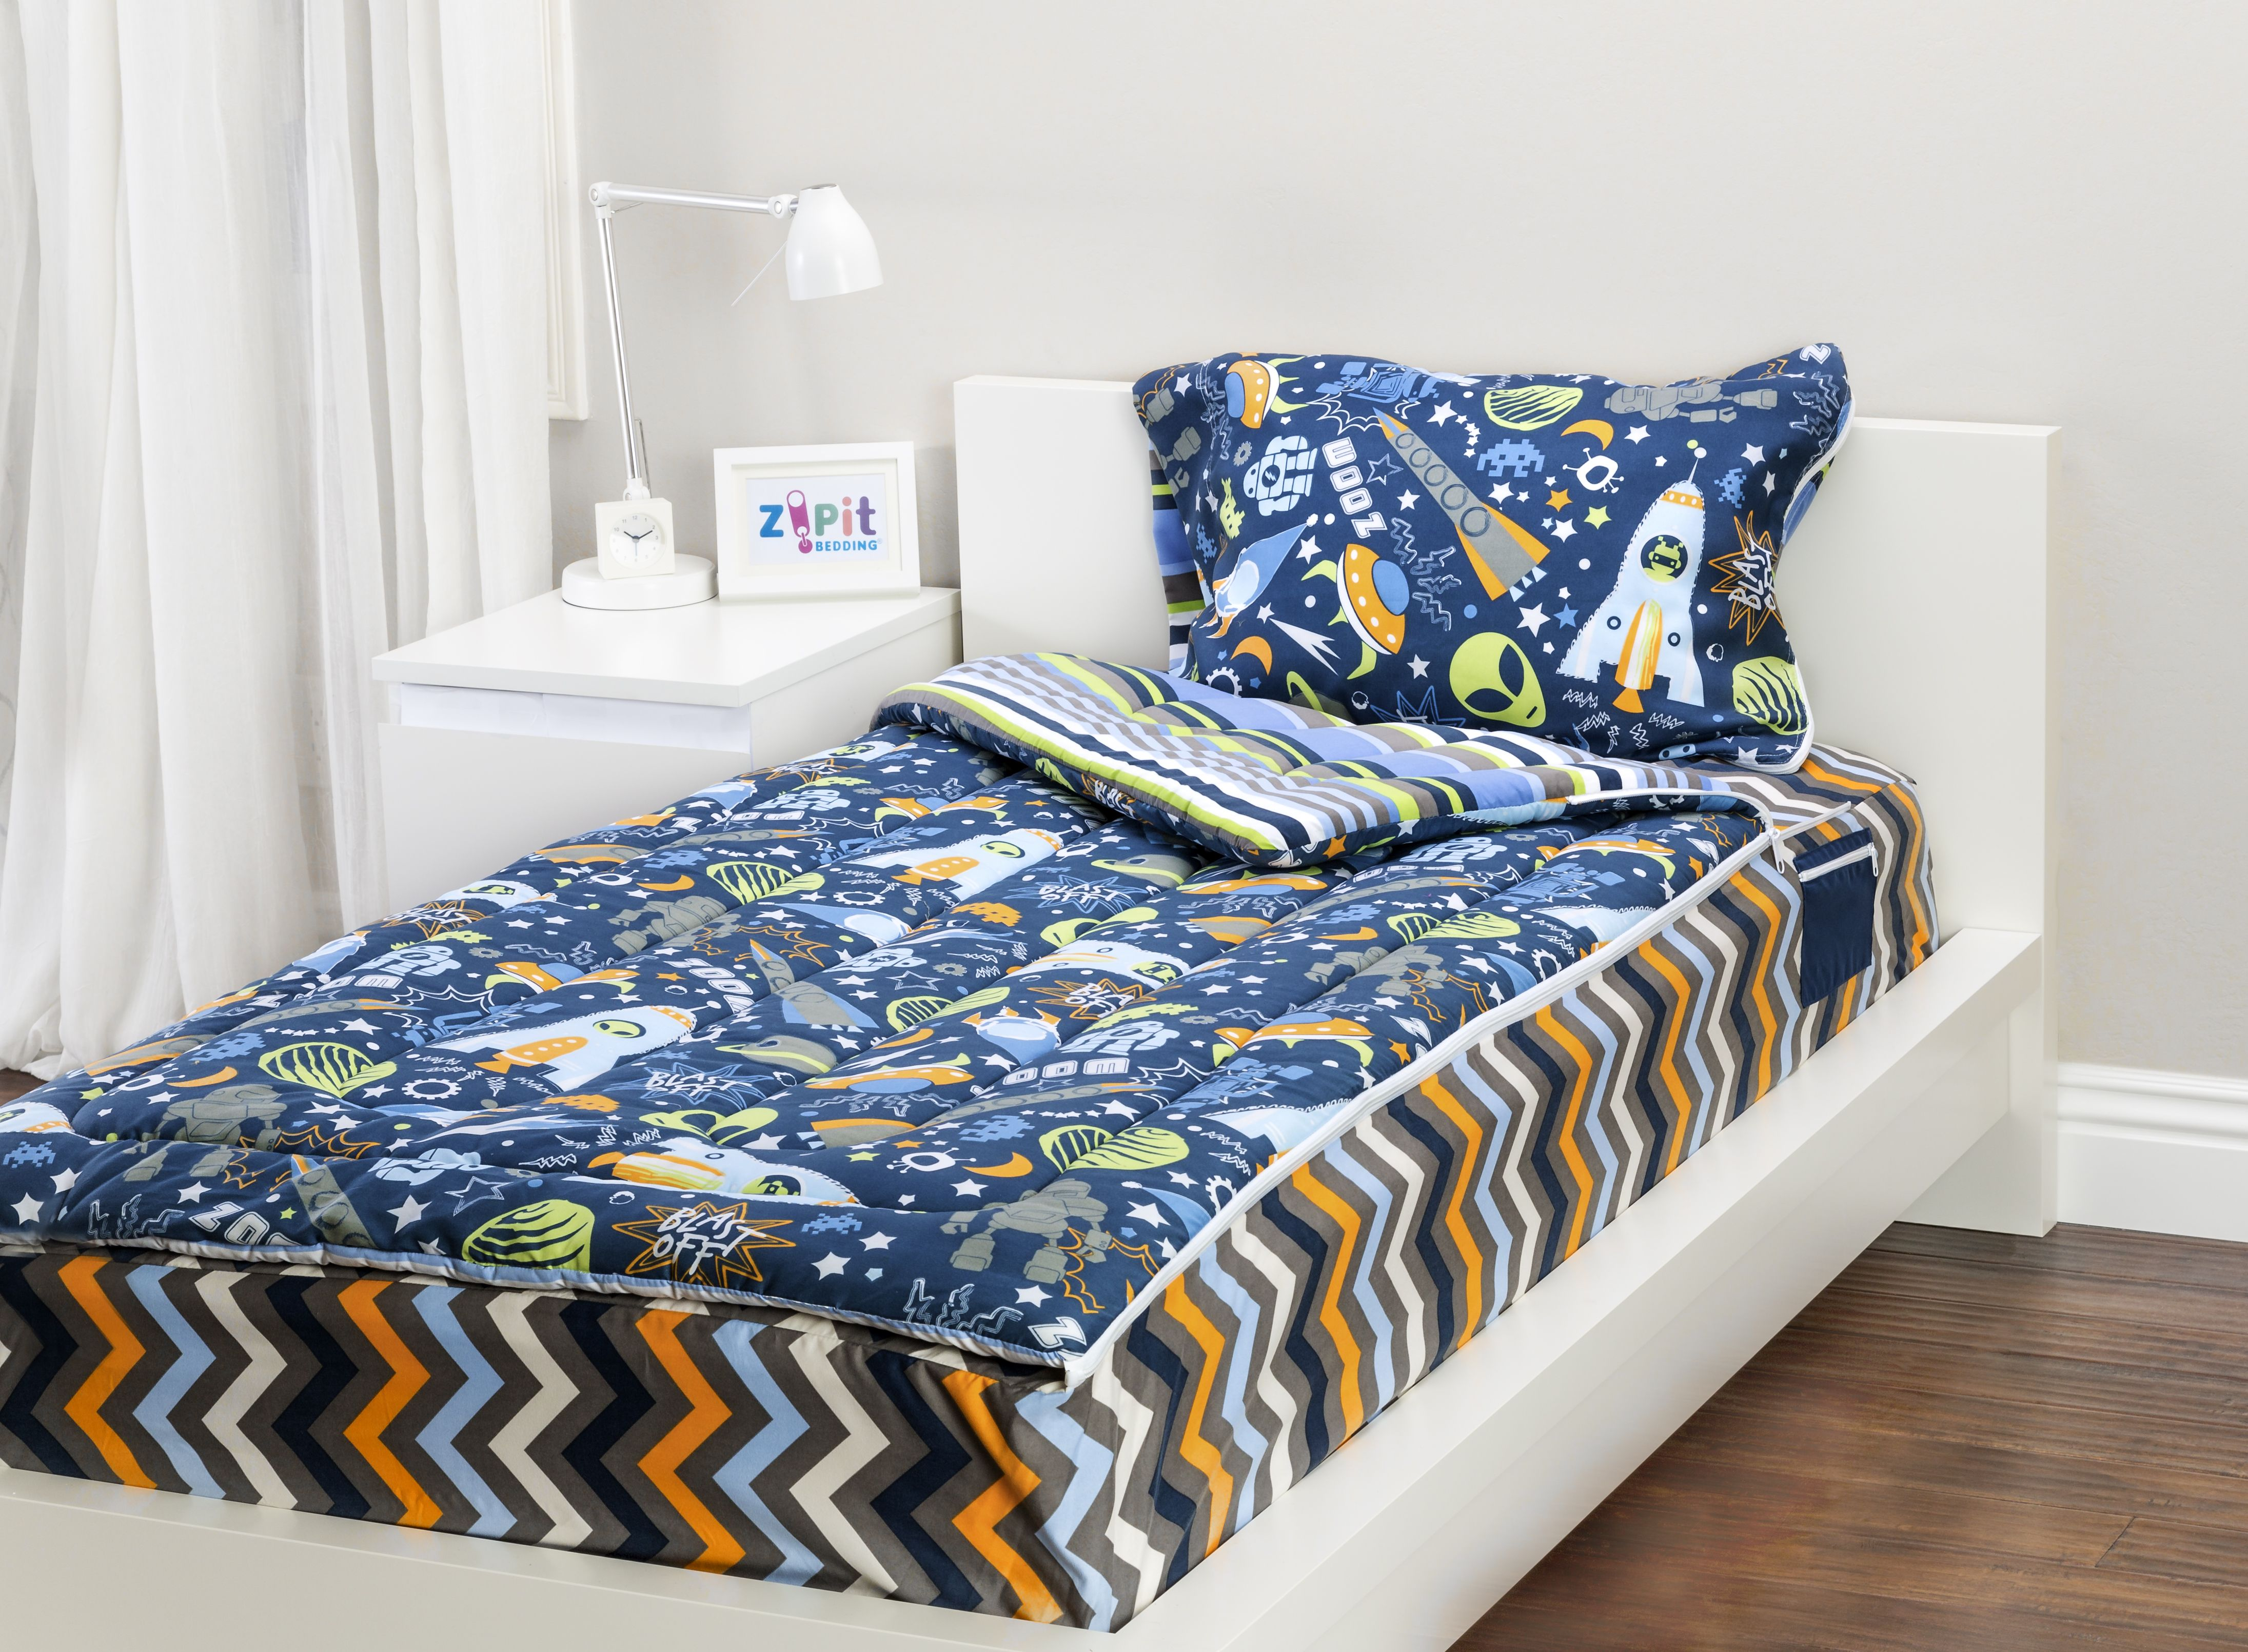 Zipit Bedding Mix 'N Match With Outer Space and Extreme ...